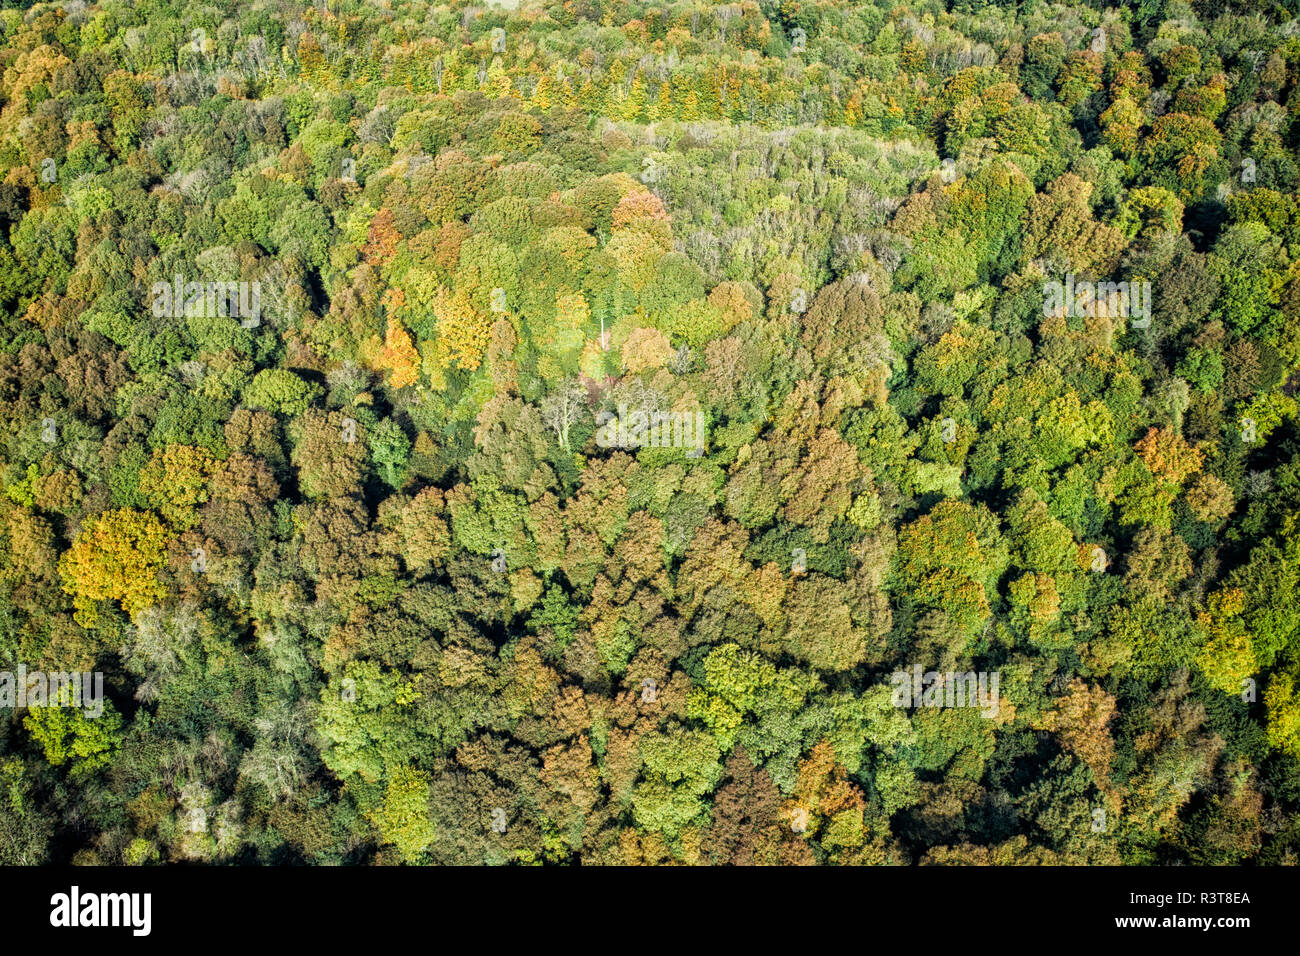 UK, Wales, autumnal forest seen from above - Stock Image